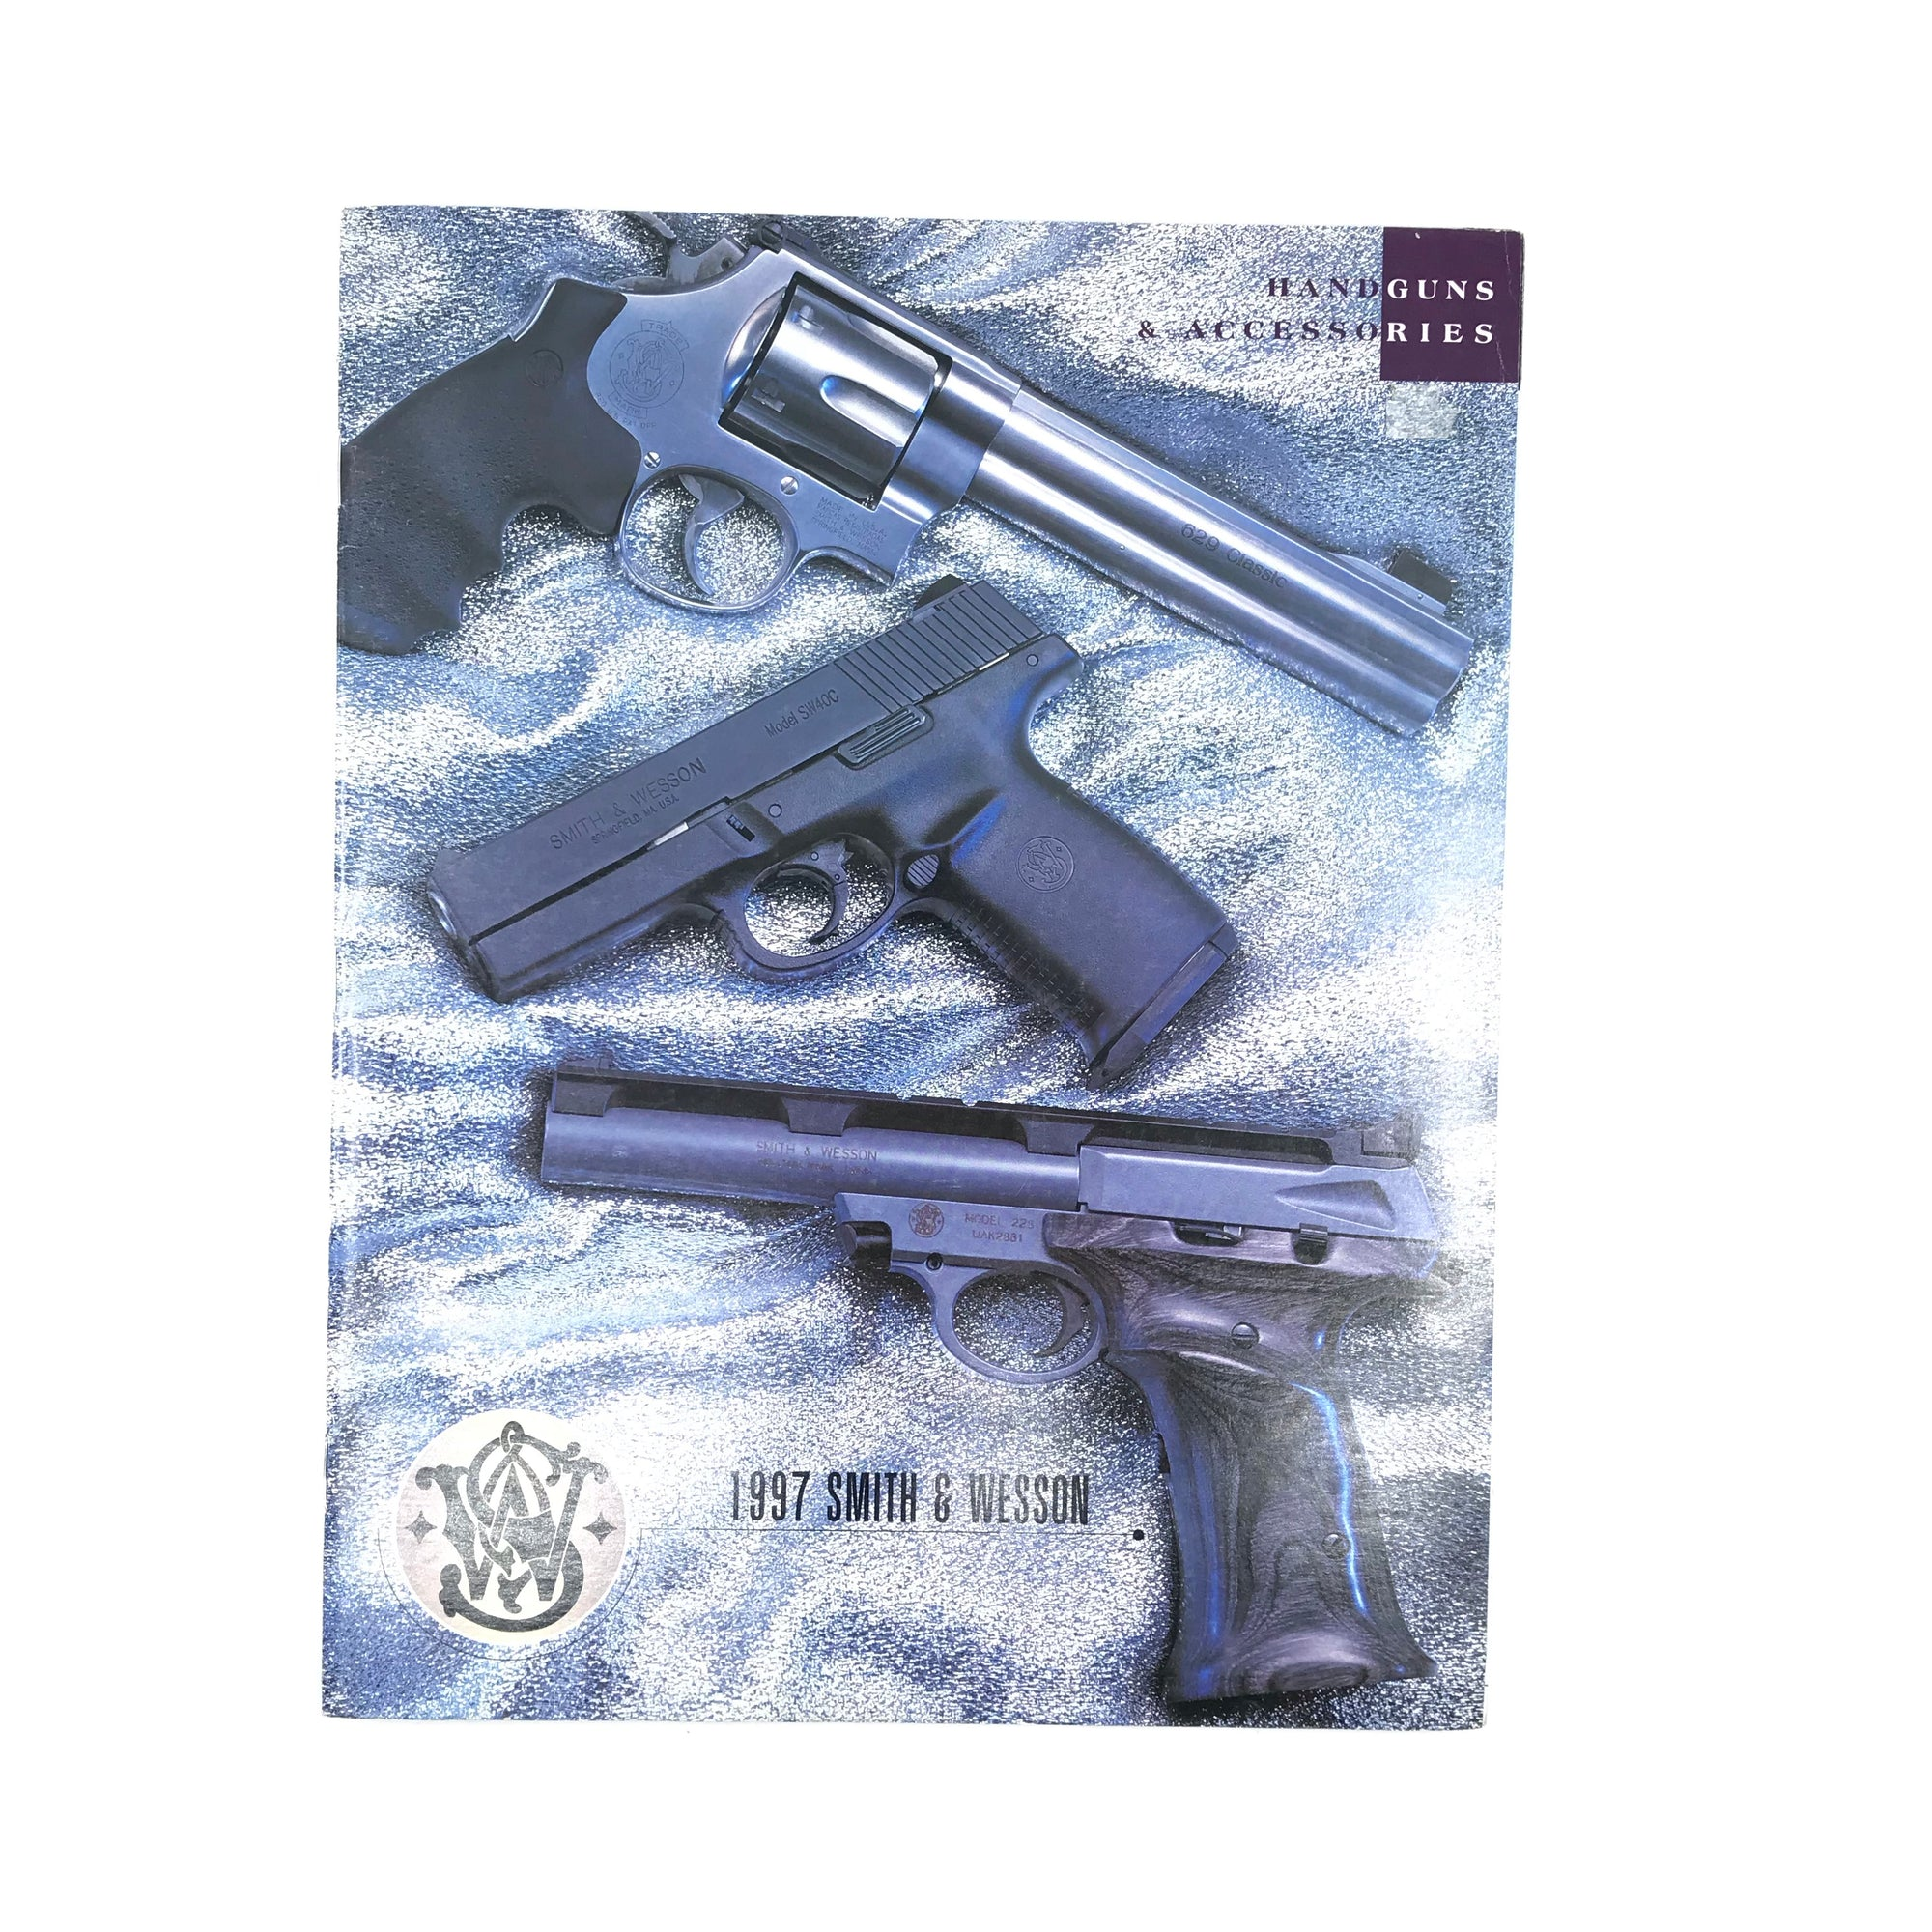 1997 Smith & Wesson Handguns & Accessories Catalogue